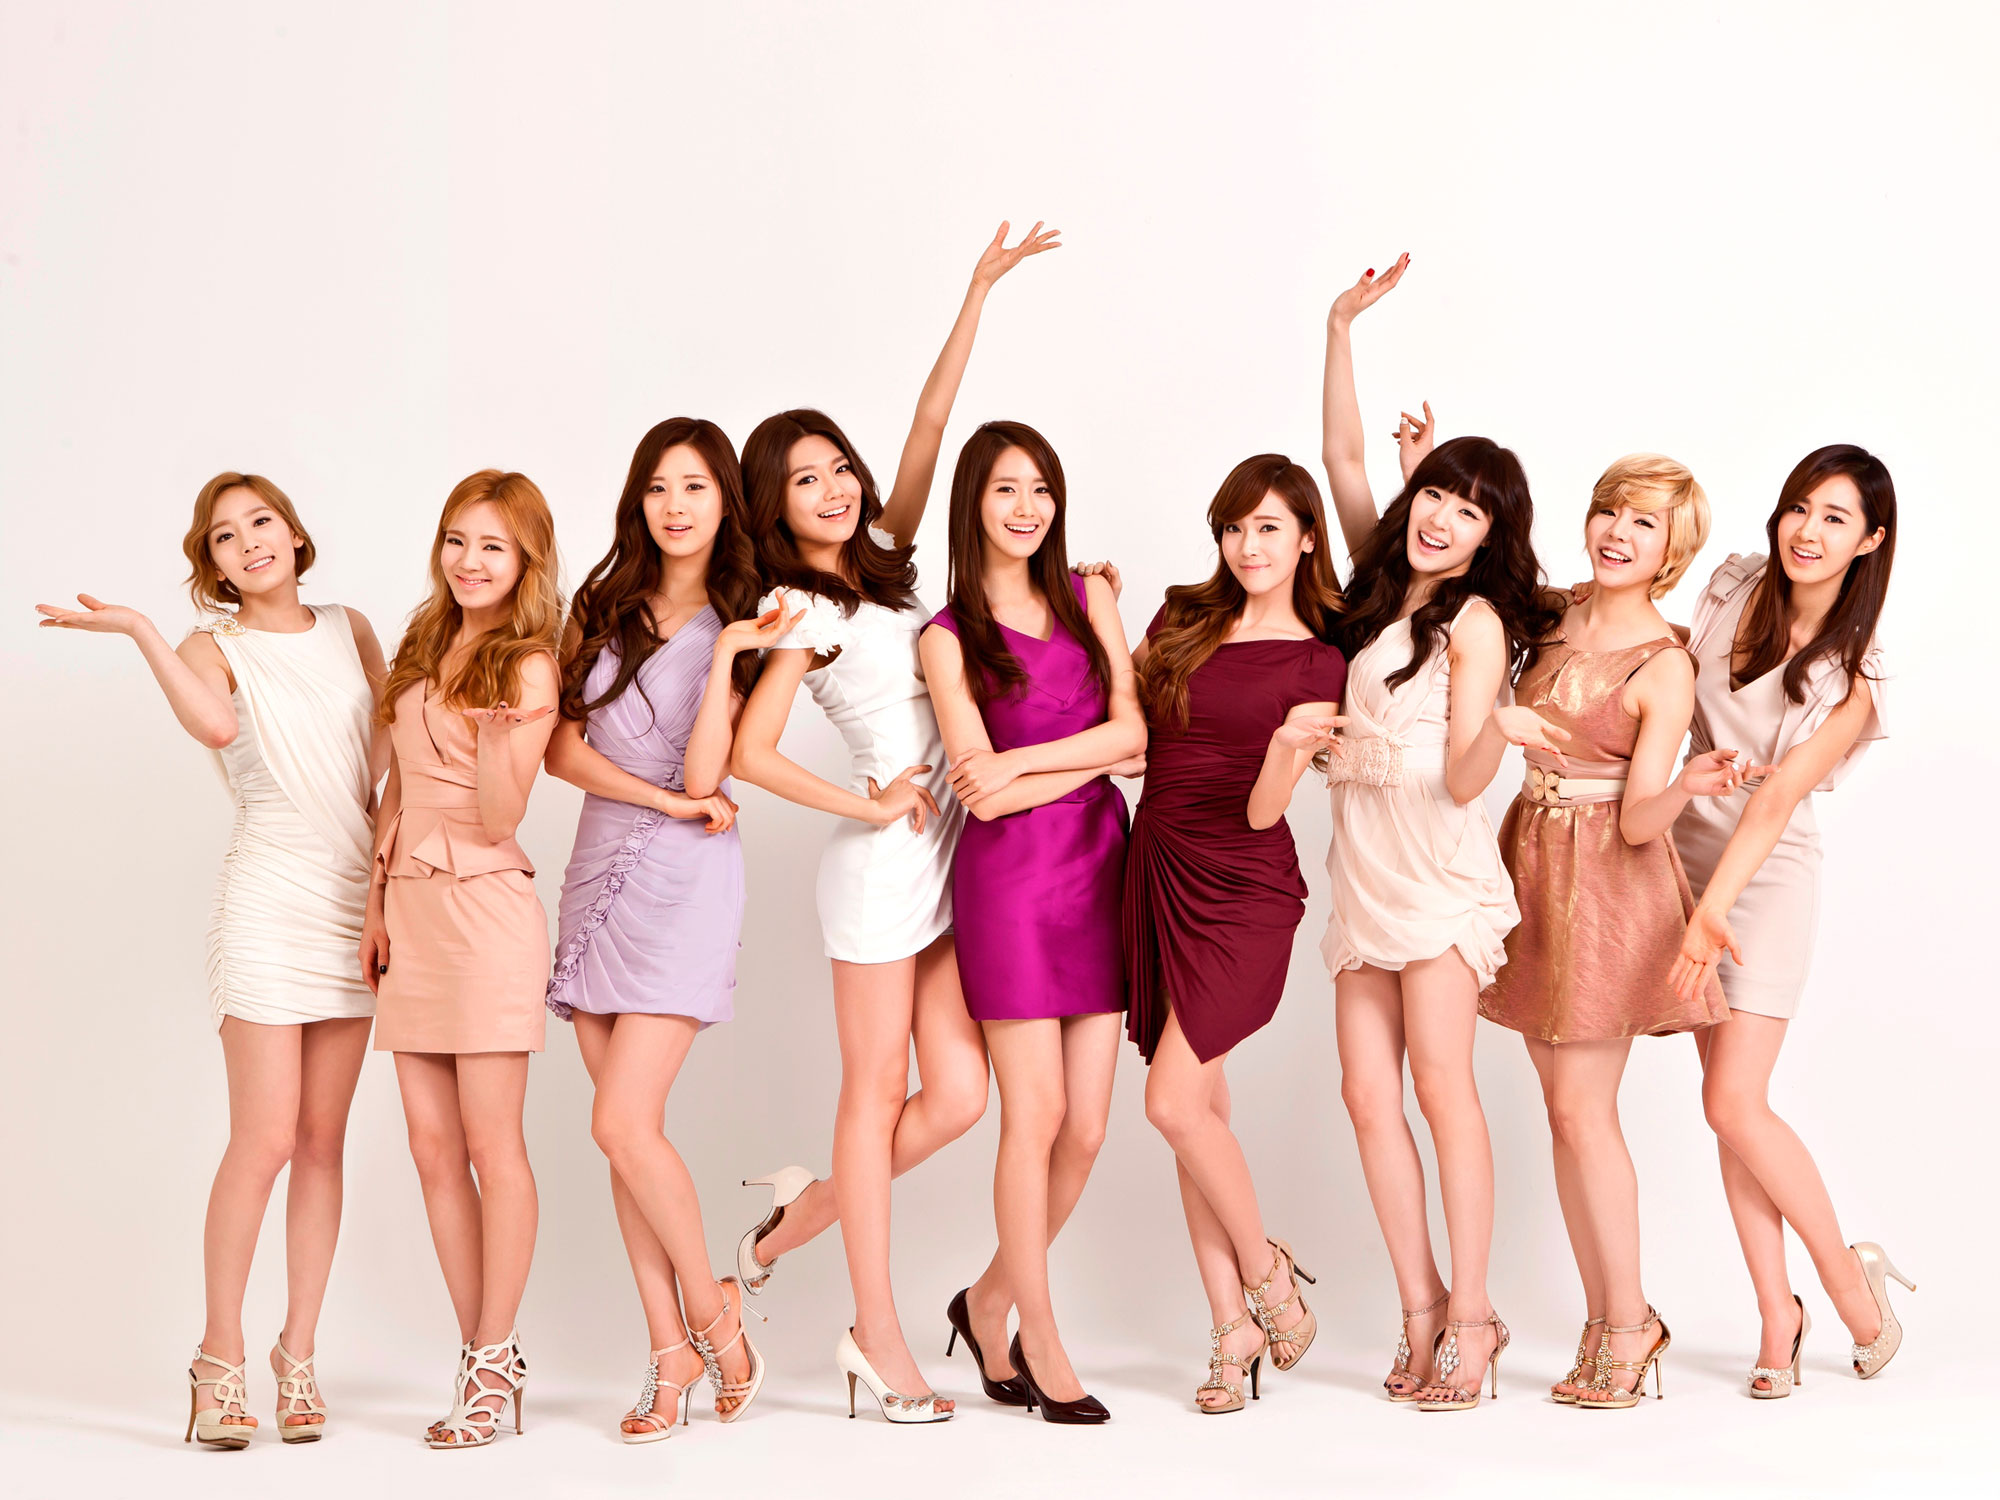 SNSD LG Cinema wallpaper